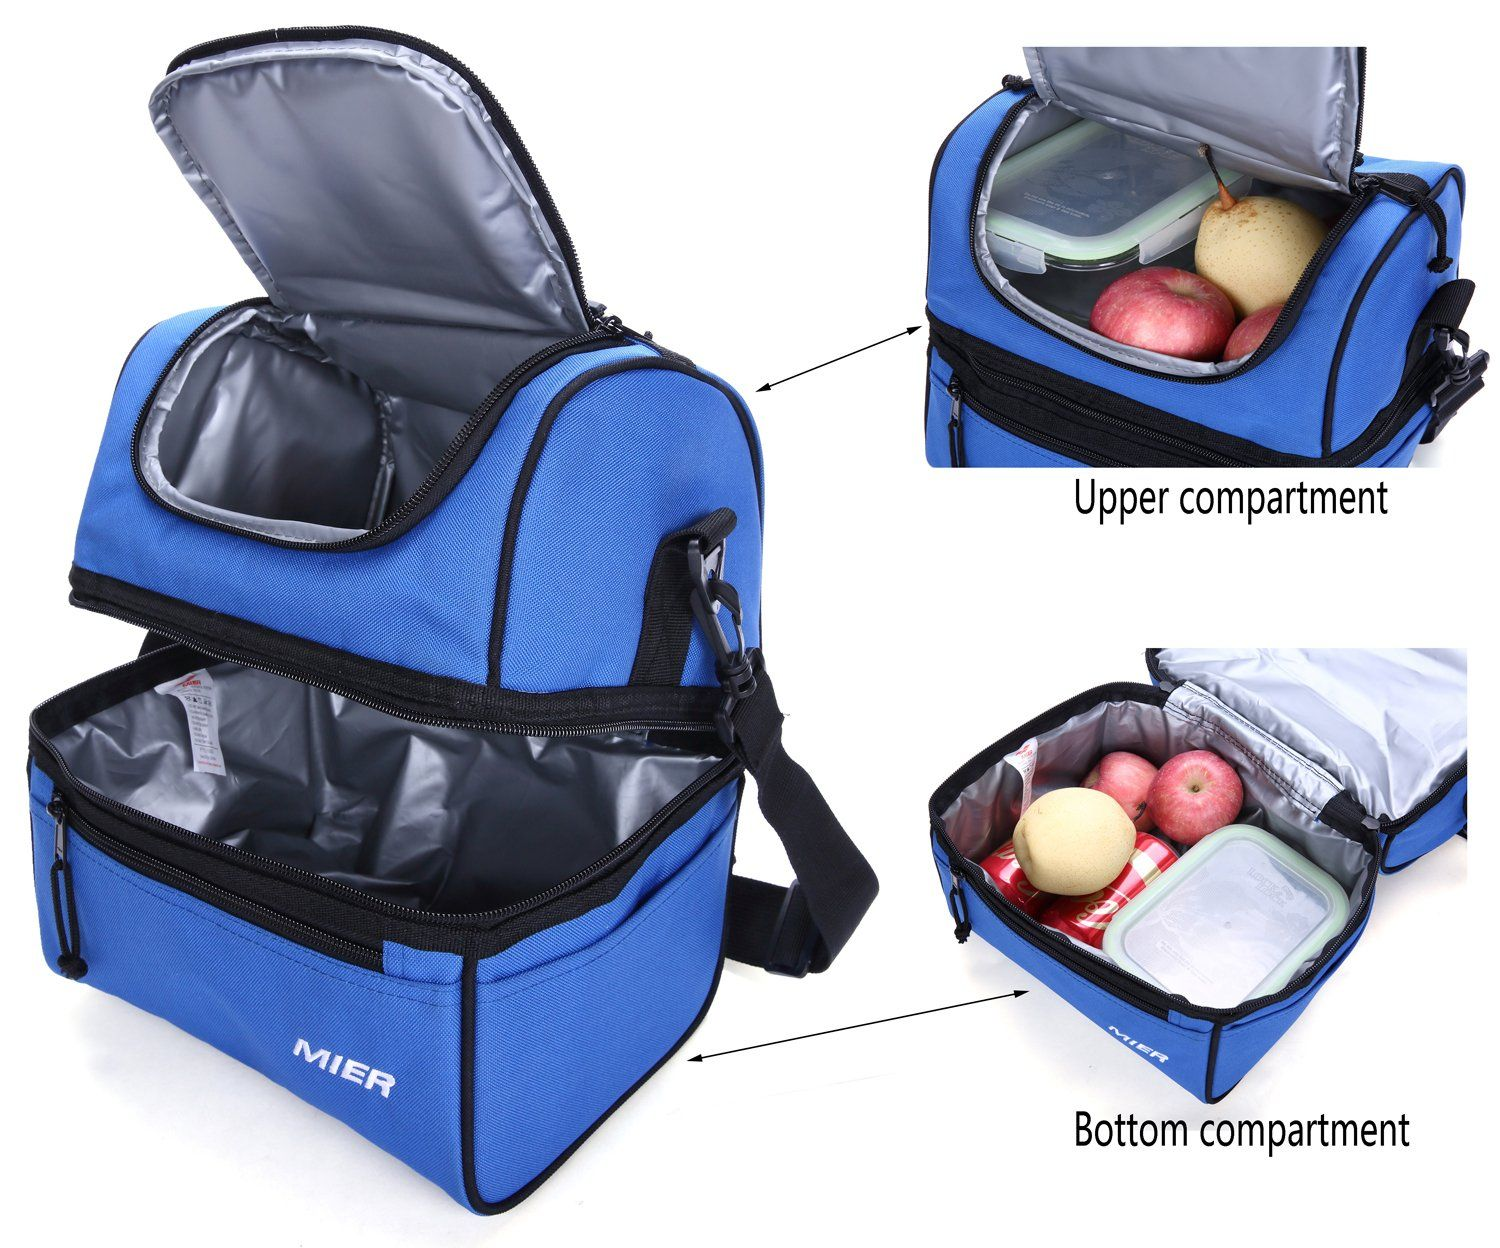 Mier Adult Lunch Box Insulated Lunch Bag Large Cooler Tote Bag For Men Women Double Deck Coolernavy Blue Cooler Tote Bag Mens Lunch Bag Insulated Lunch Bags